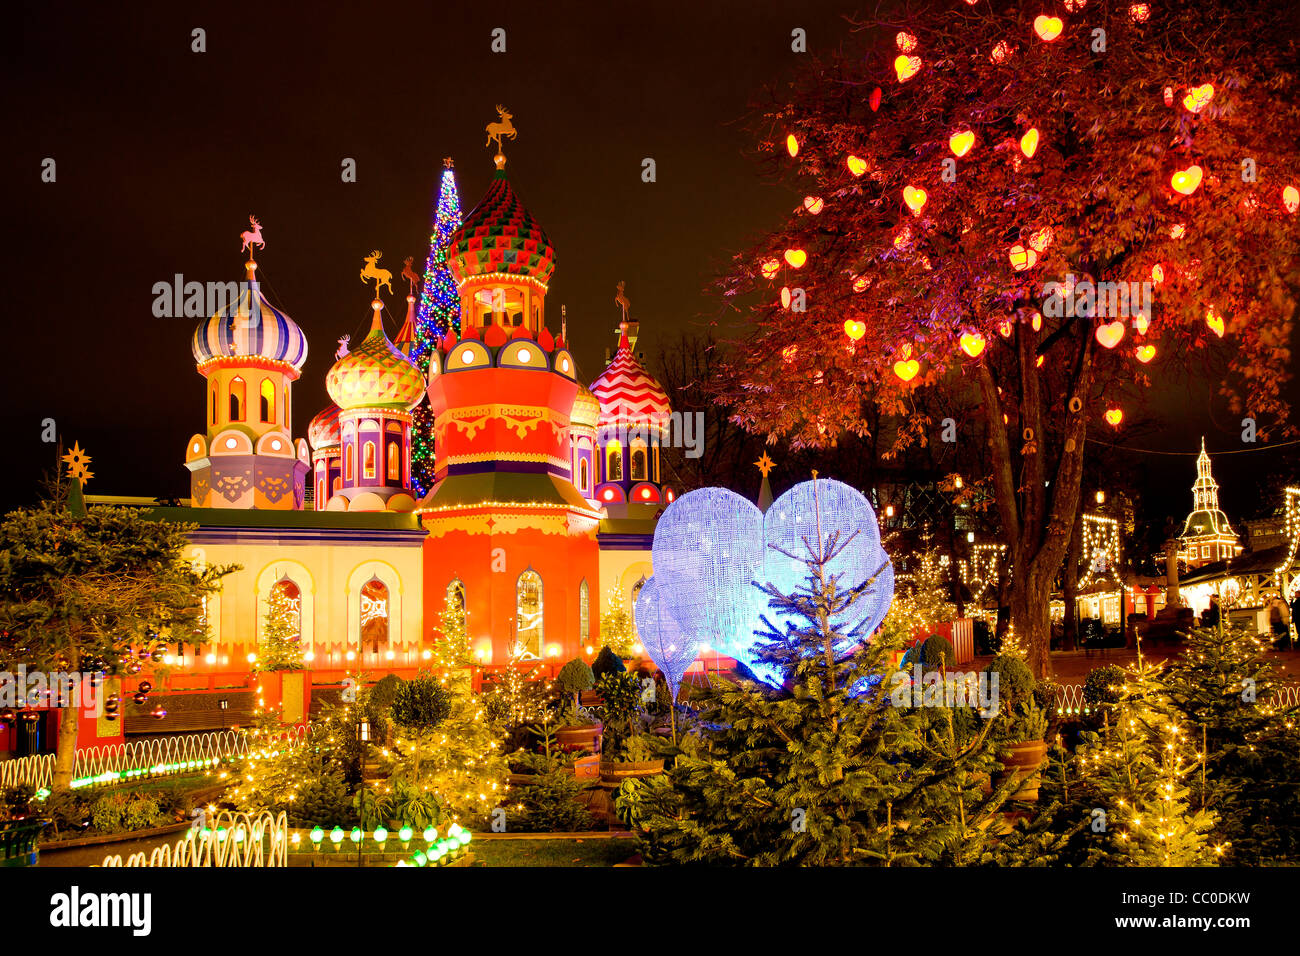 The Russian Christmas Theme In Tivoli Copenhagen Stock